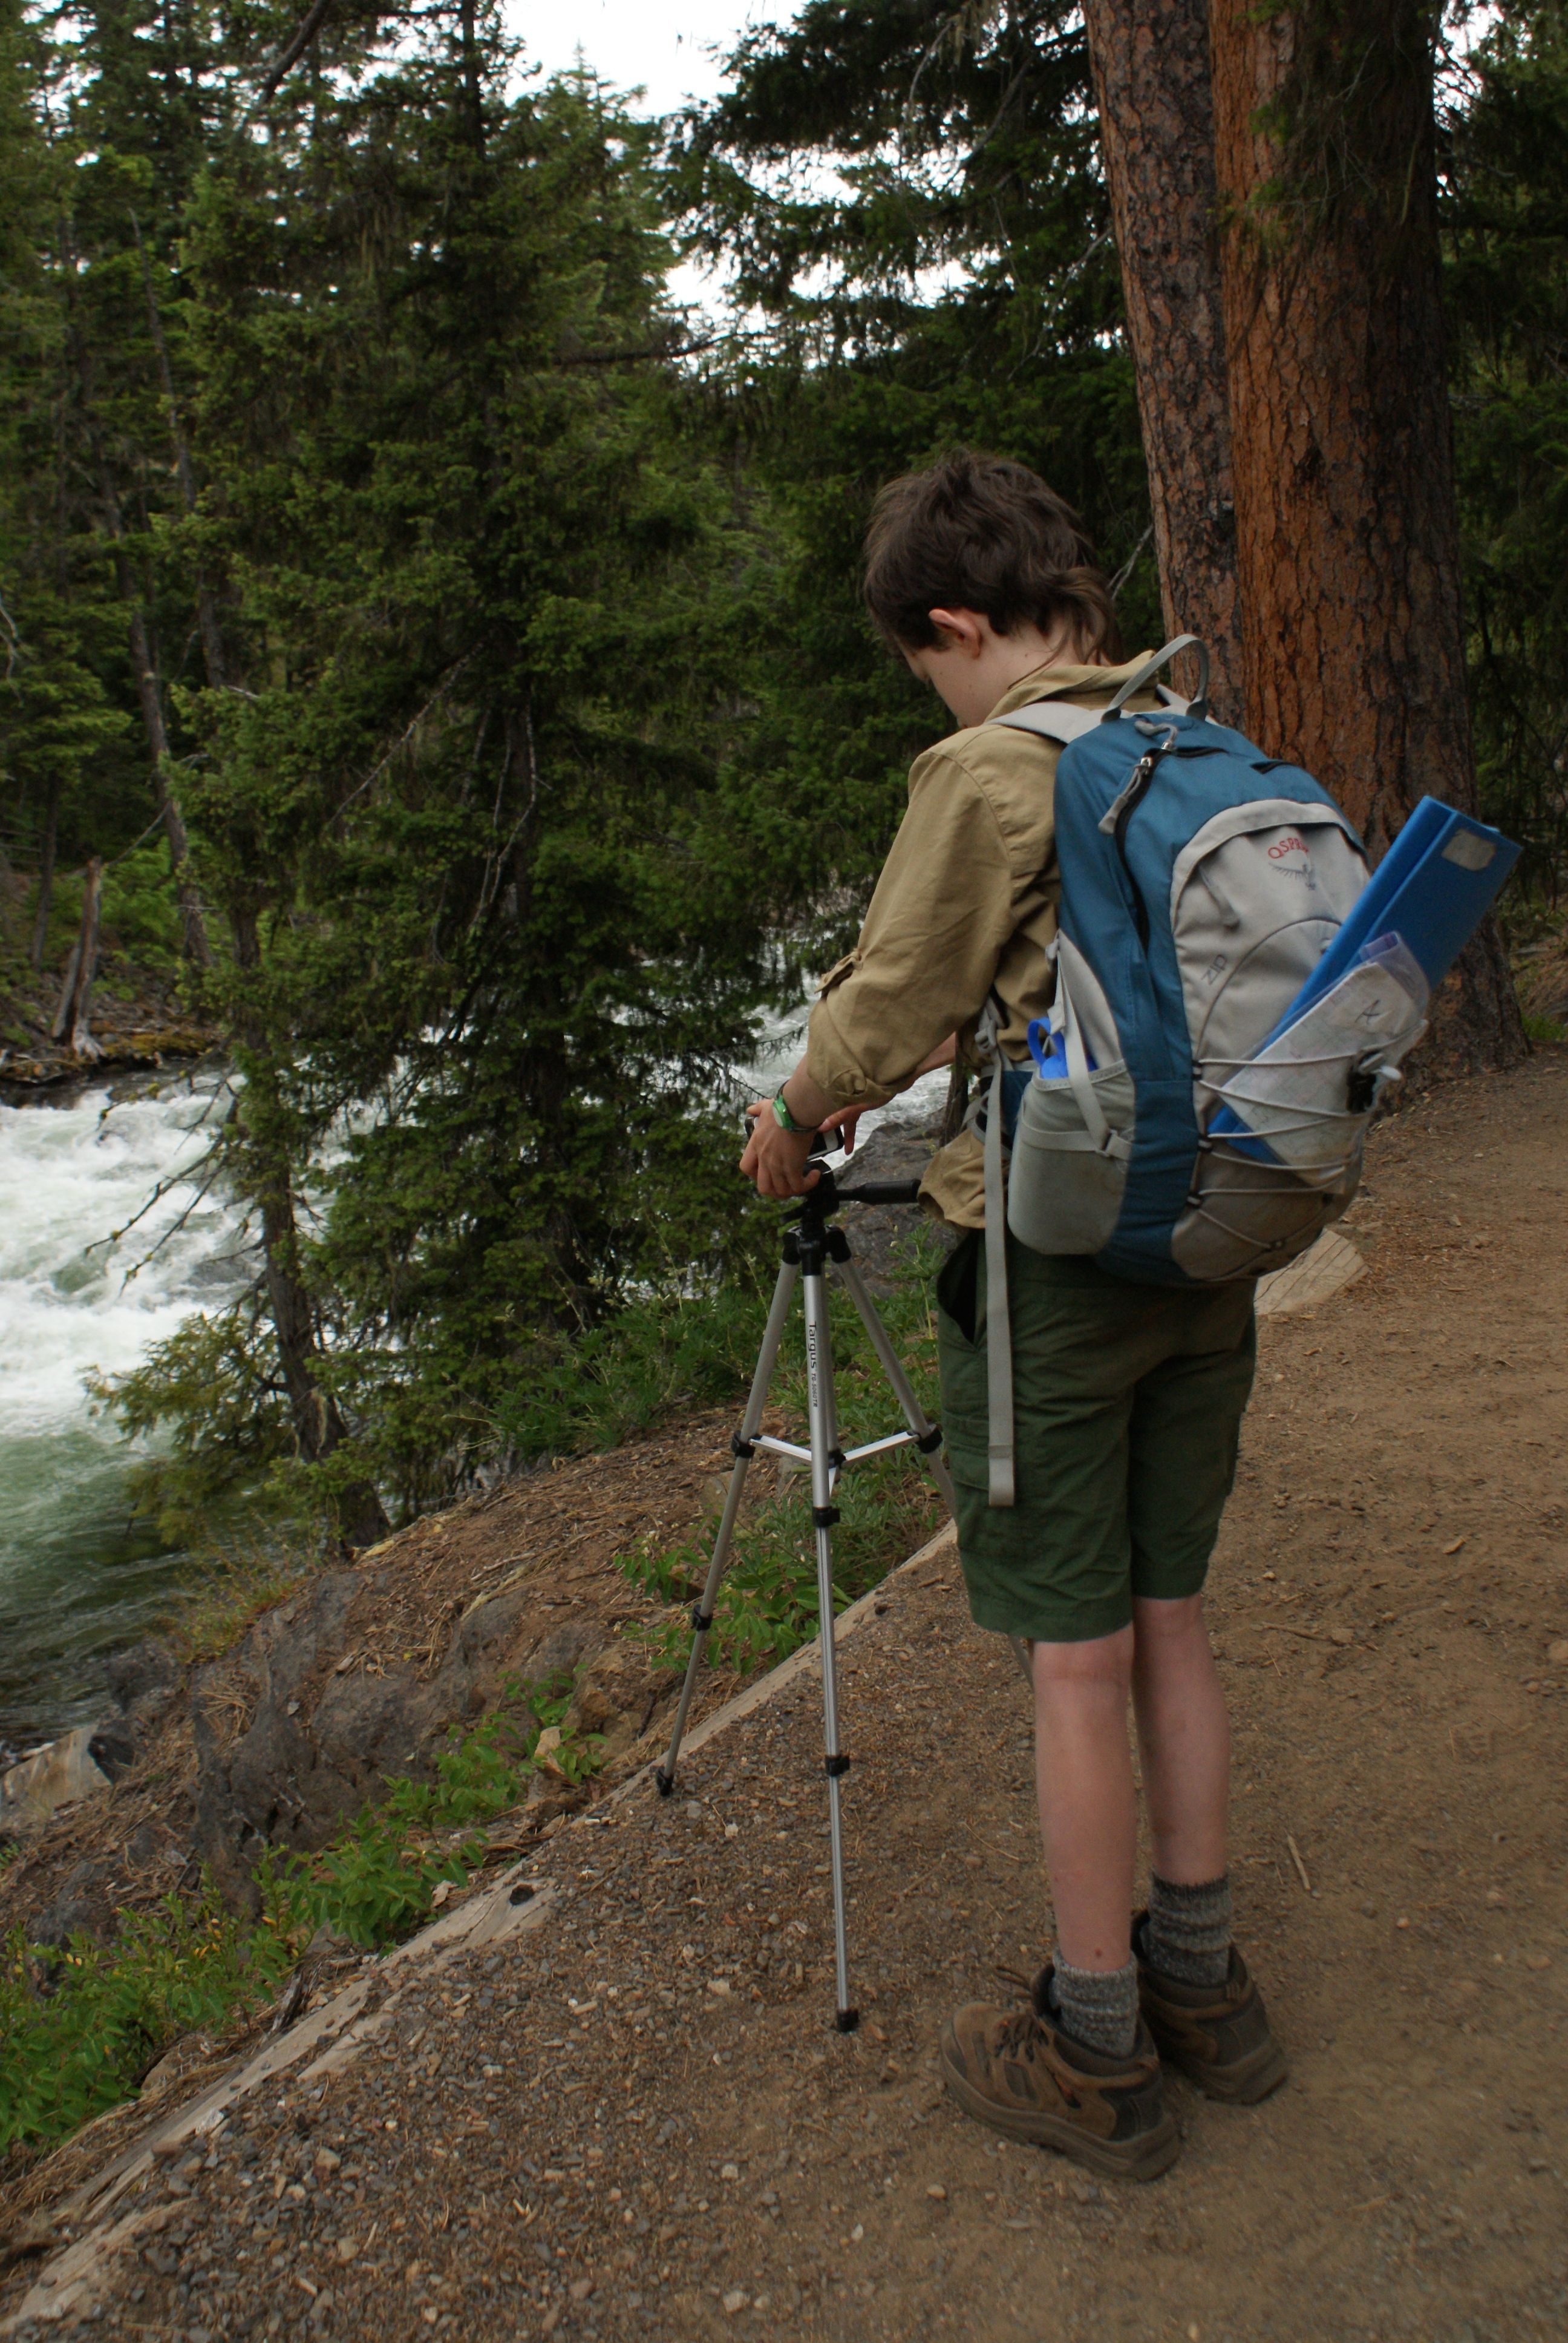 icicle river gorge trail, kids in nature, hiking with children